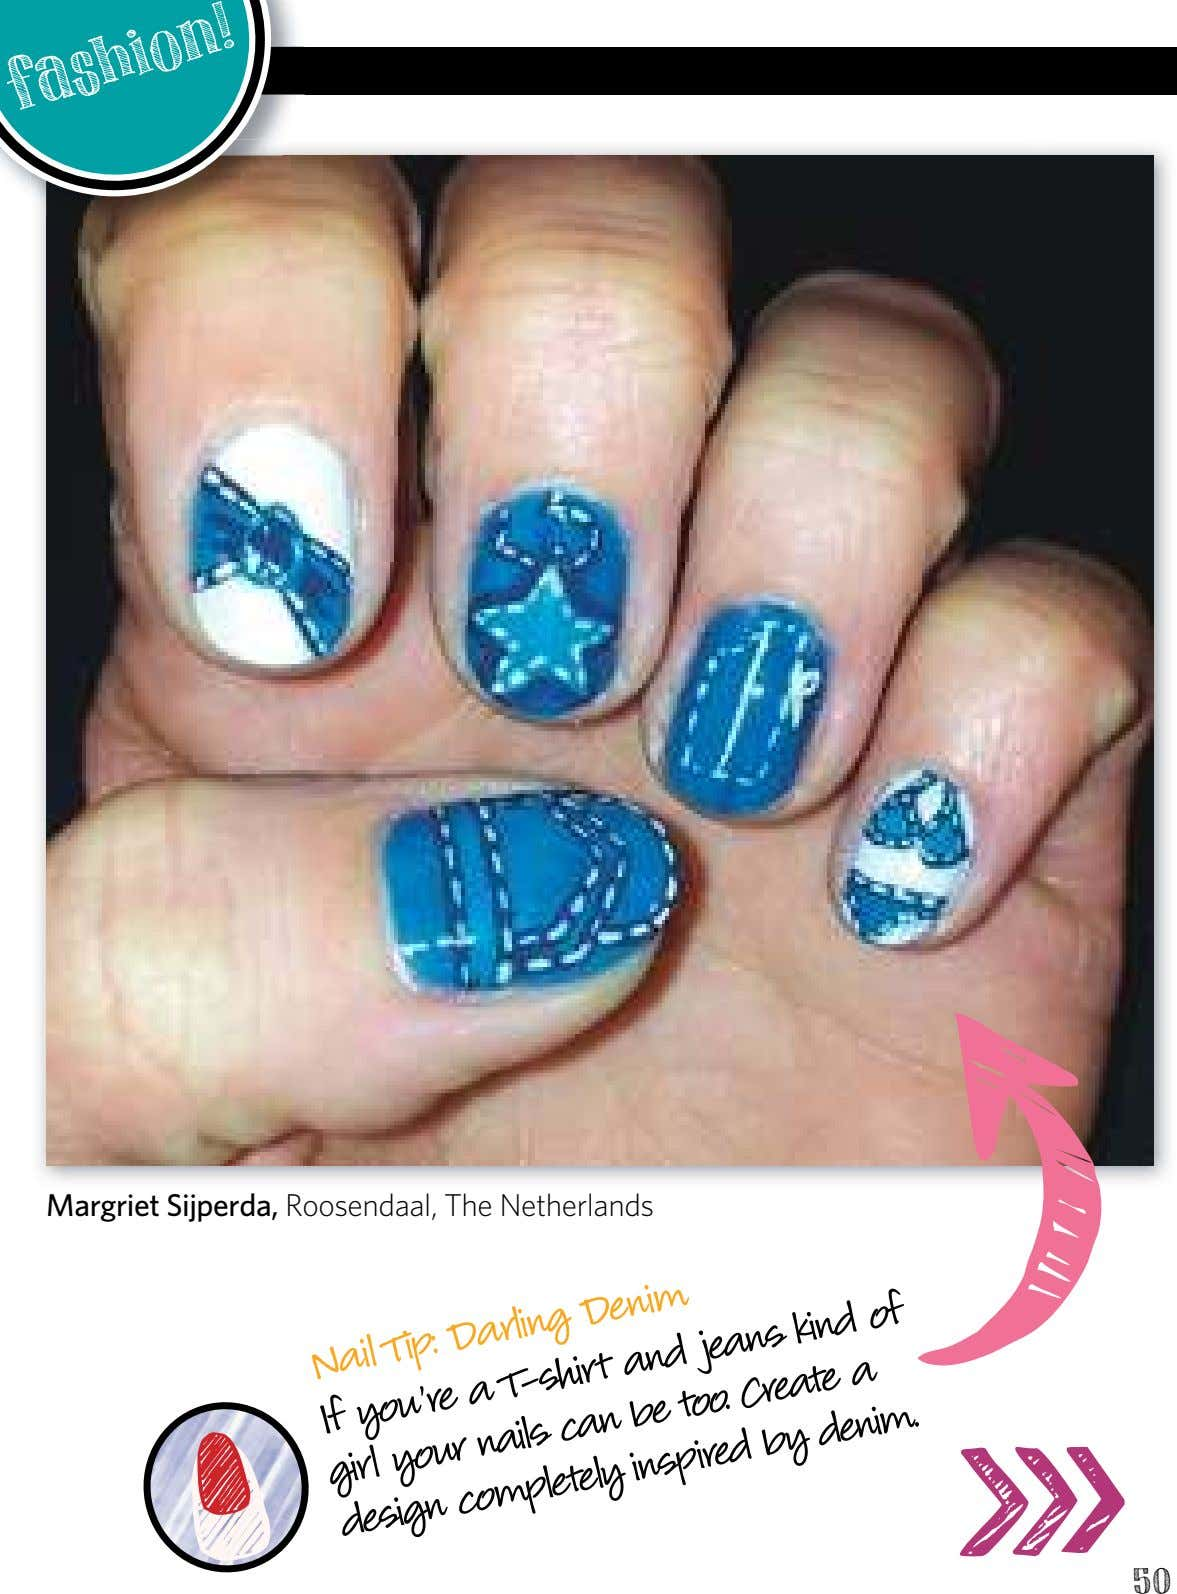 fashion ! Margriet Sijperda, Roosendaal, The Netherlands Nail Tip: Darling Denim and too. jeans T-shirt